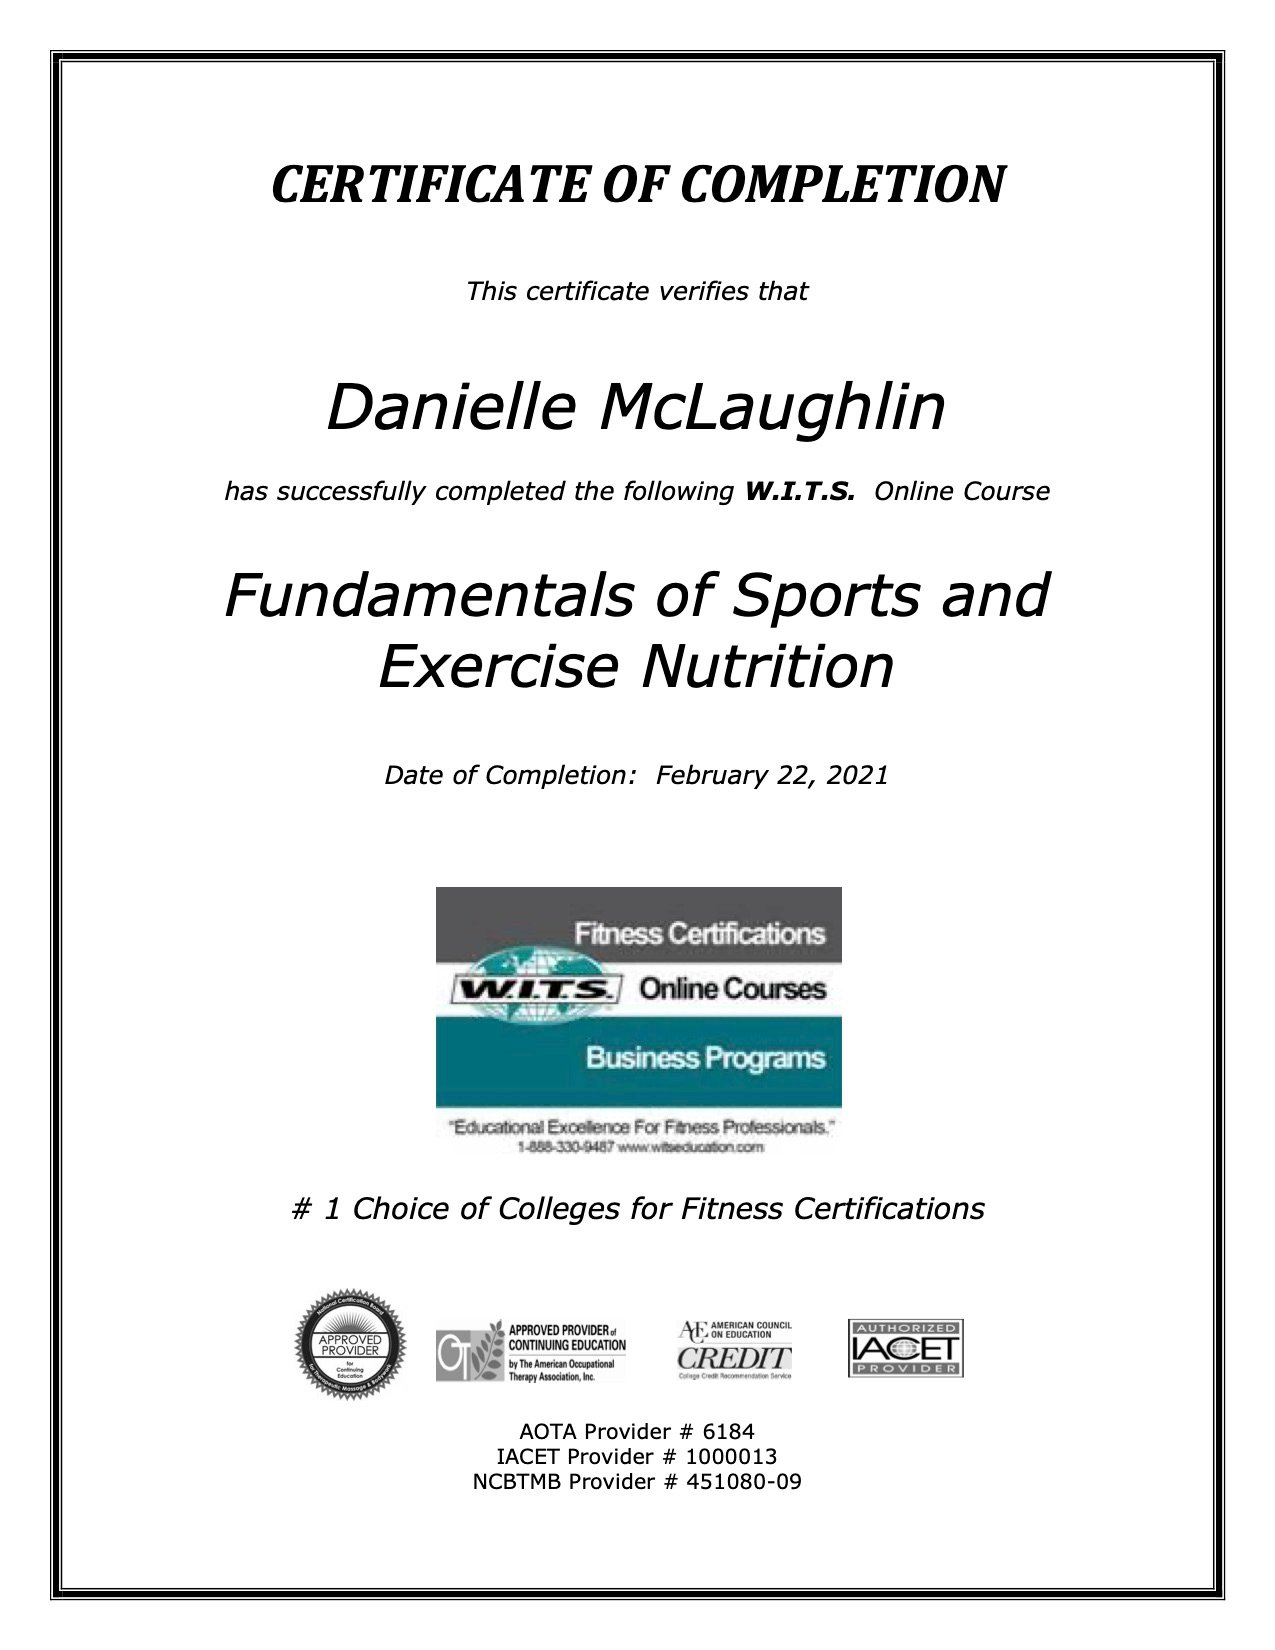 Certificate of completion in Fundamentals of Sports and Exercise Nutrition conferred by W.I.T.S.